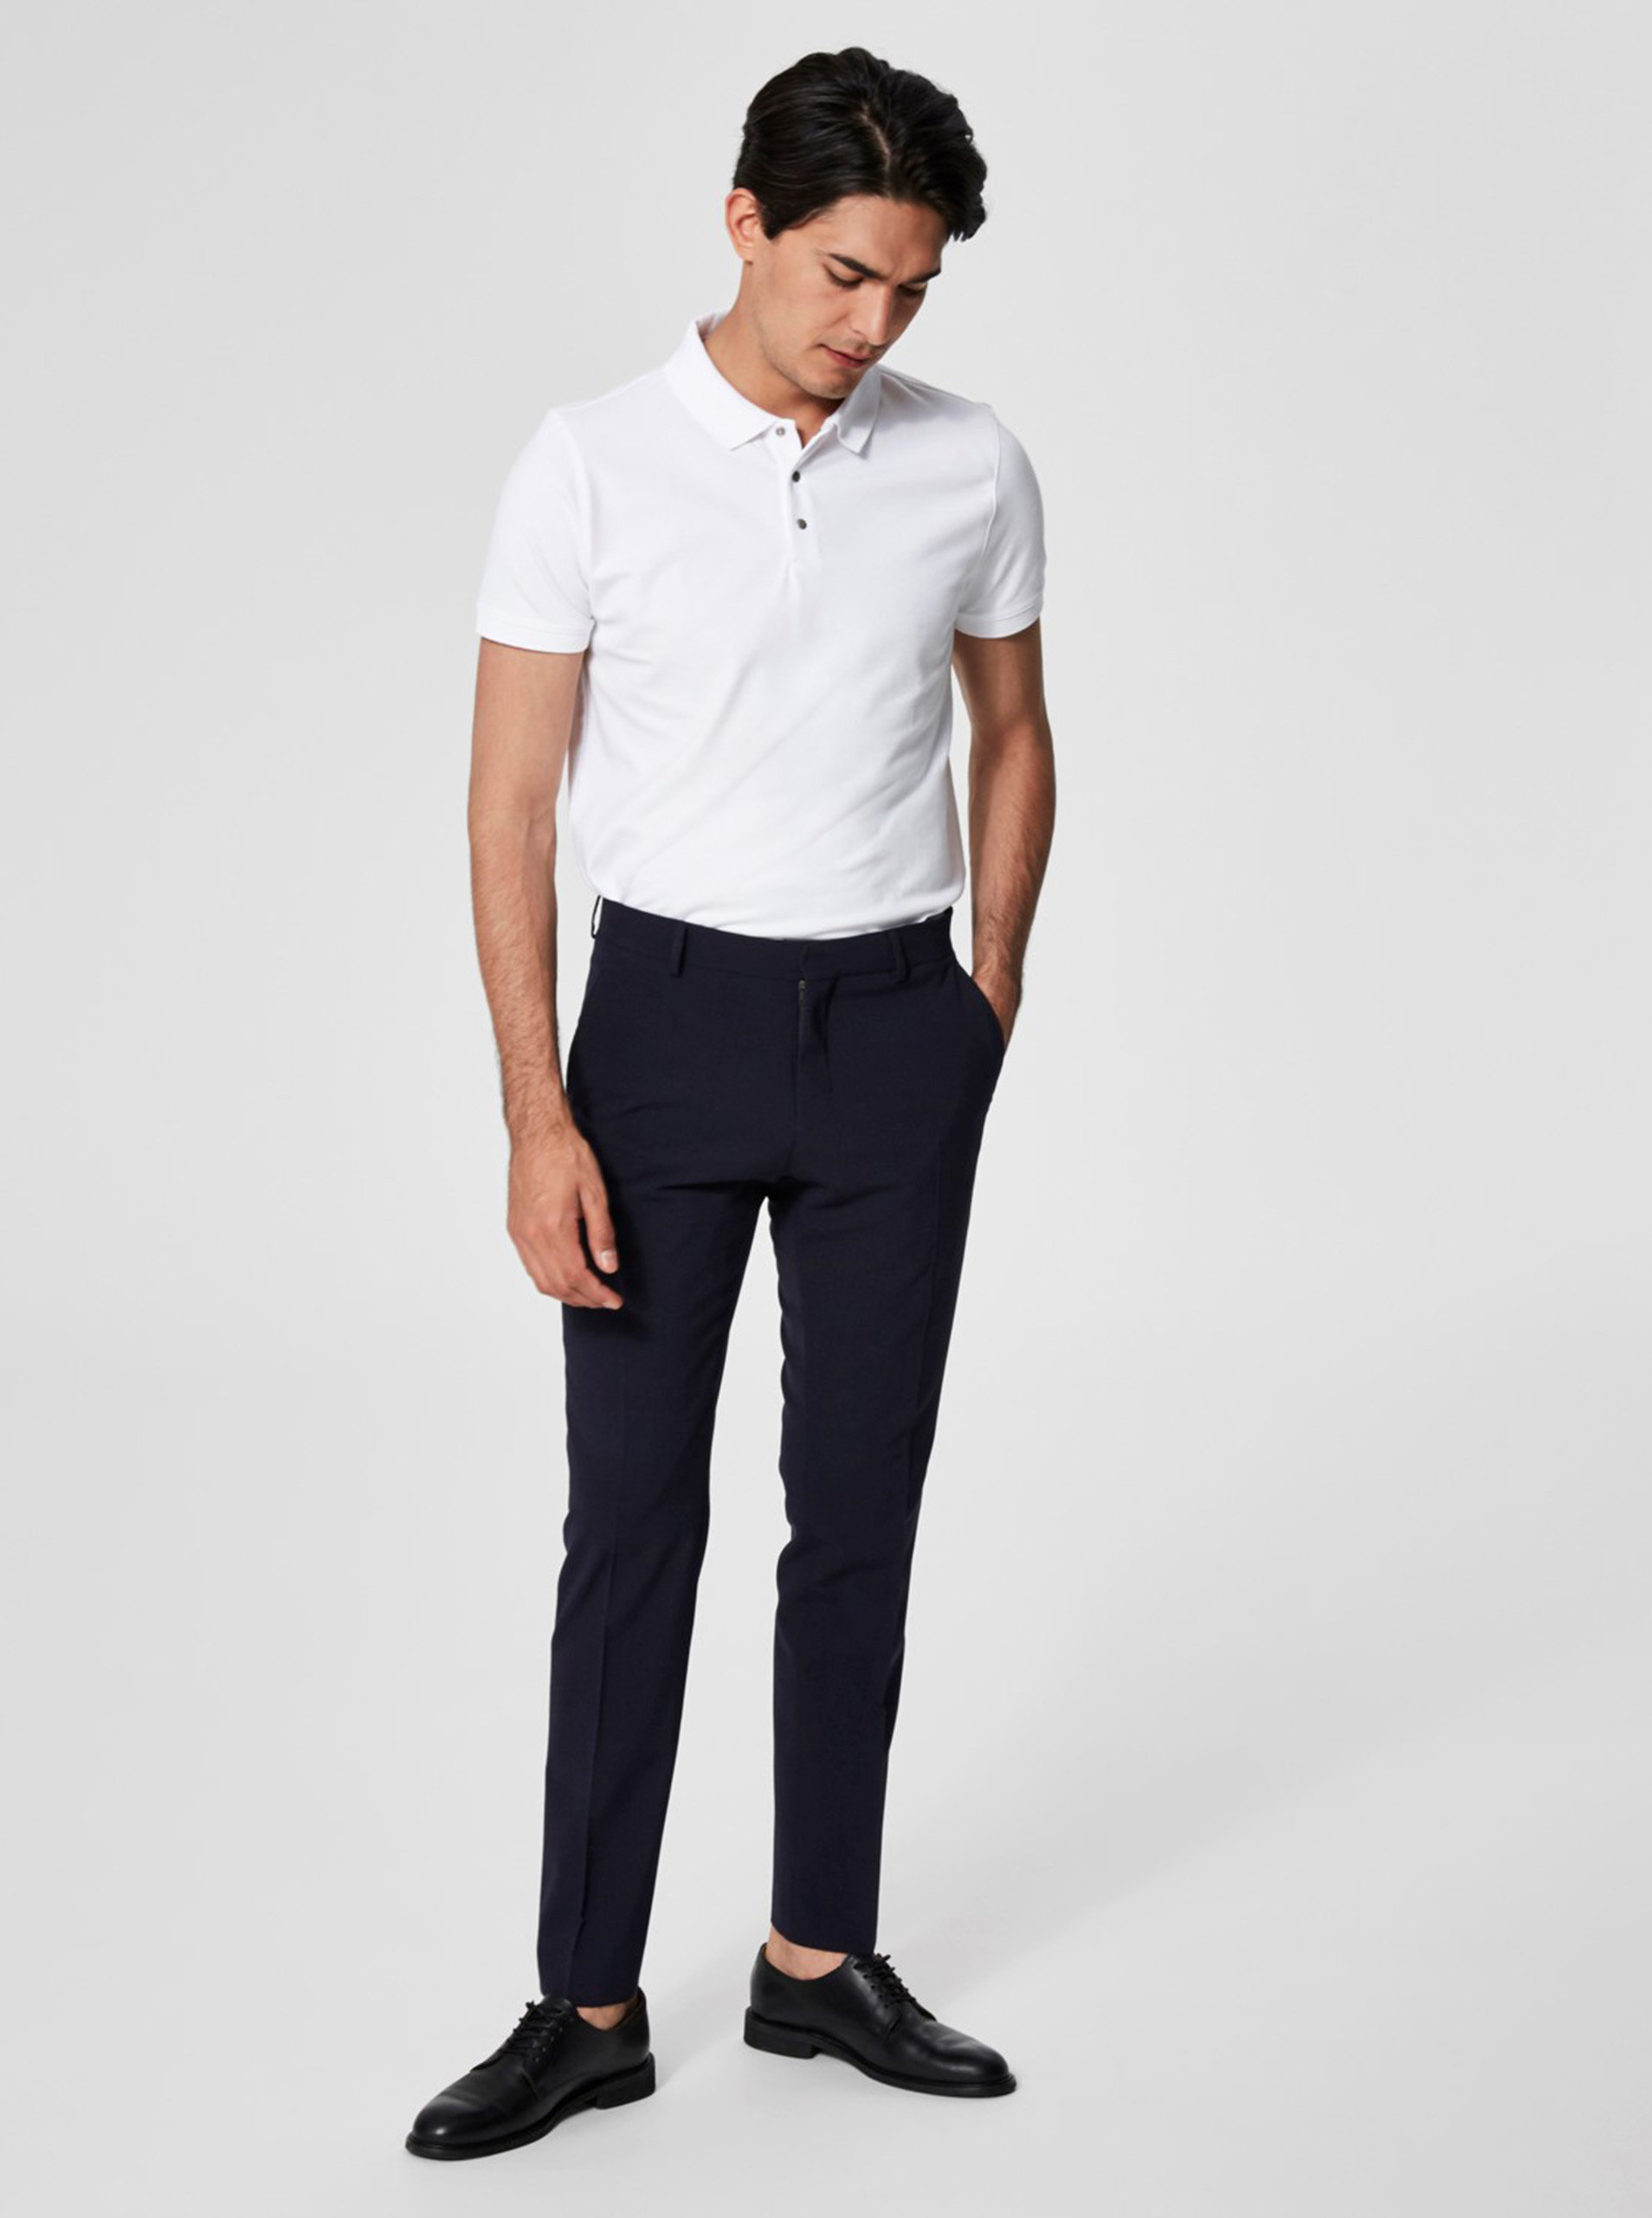 ro Homme Polo Selected Tricou DamonZoot Alb L3ARS4c5jq